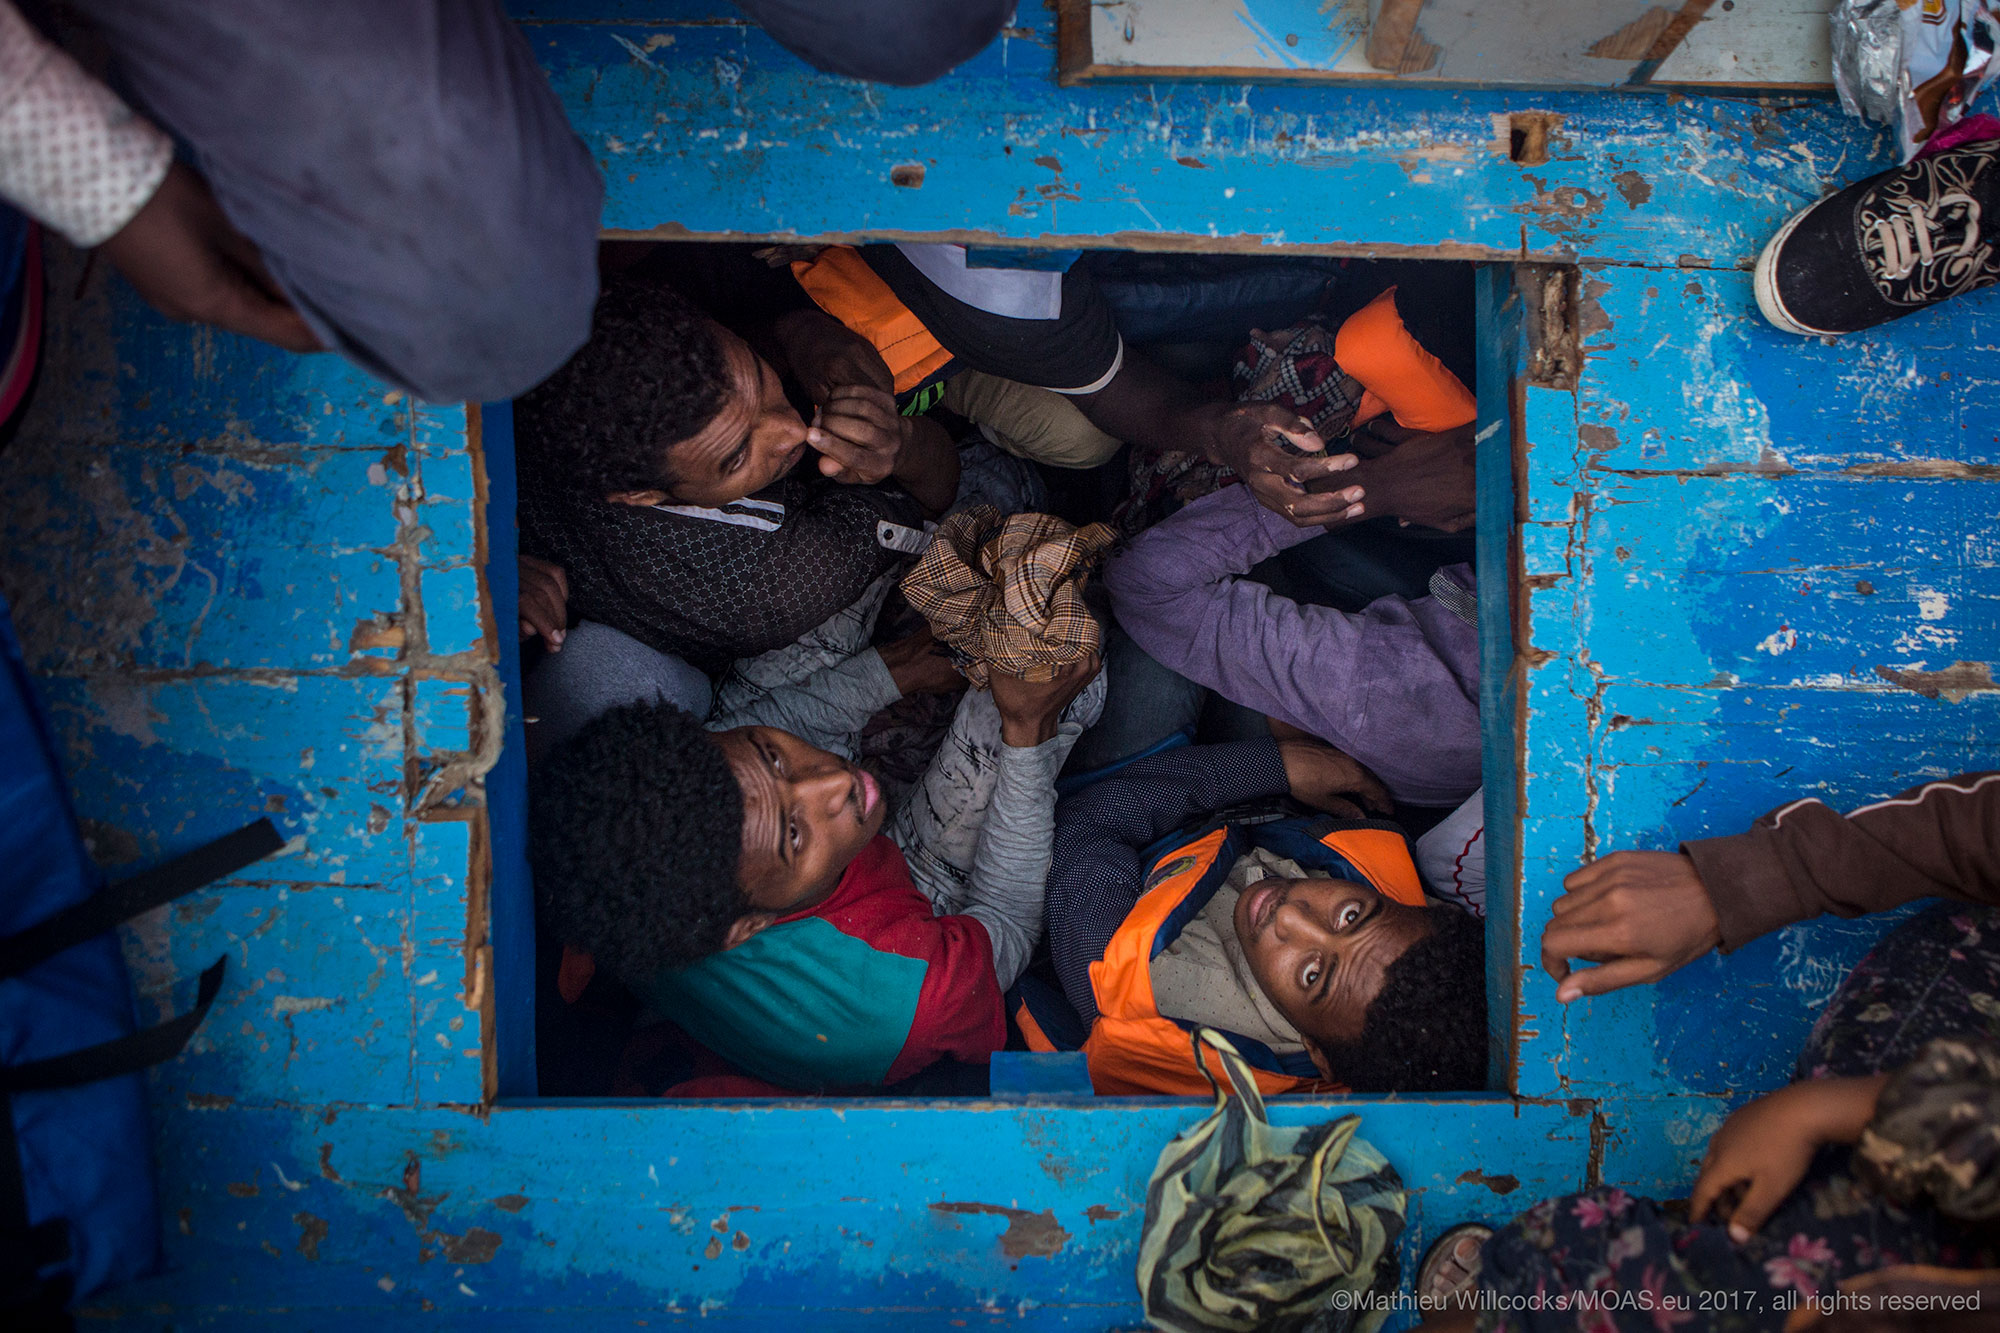 People attempting to cross the Mediterranean are pictured cramped inside a boat.